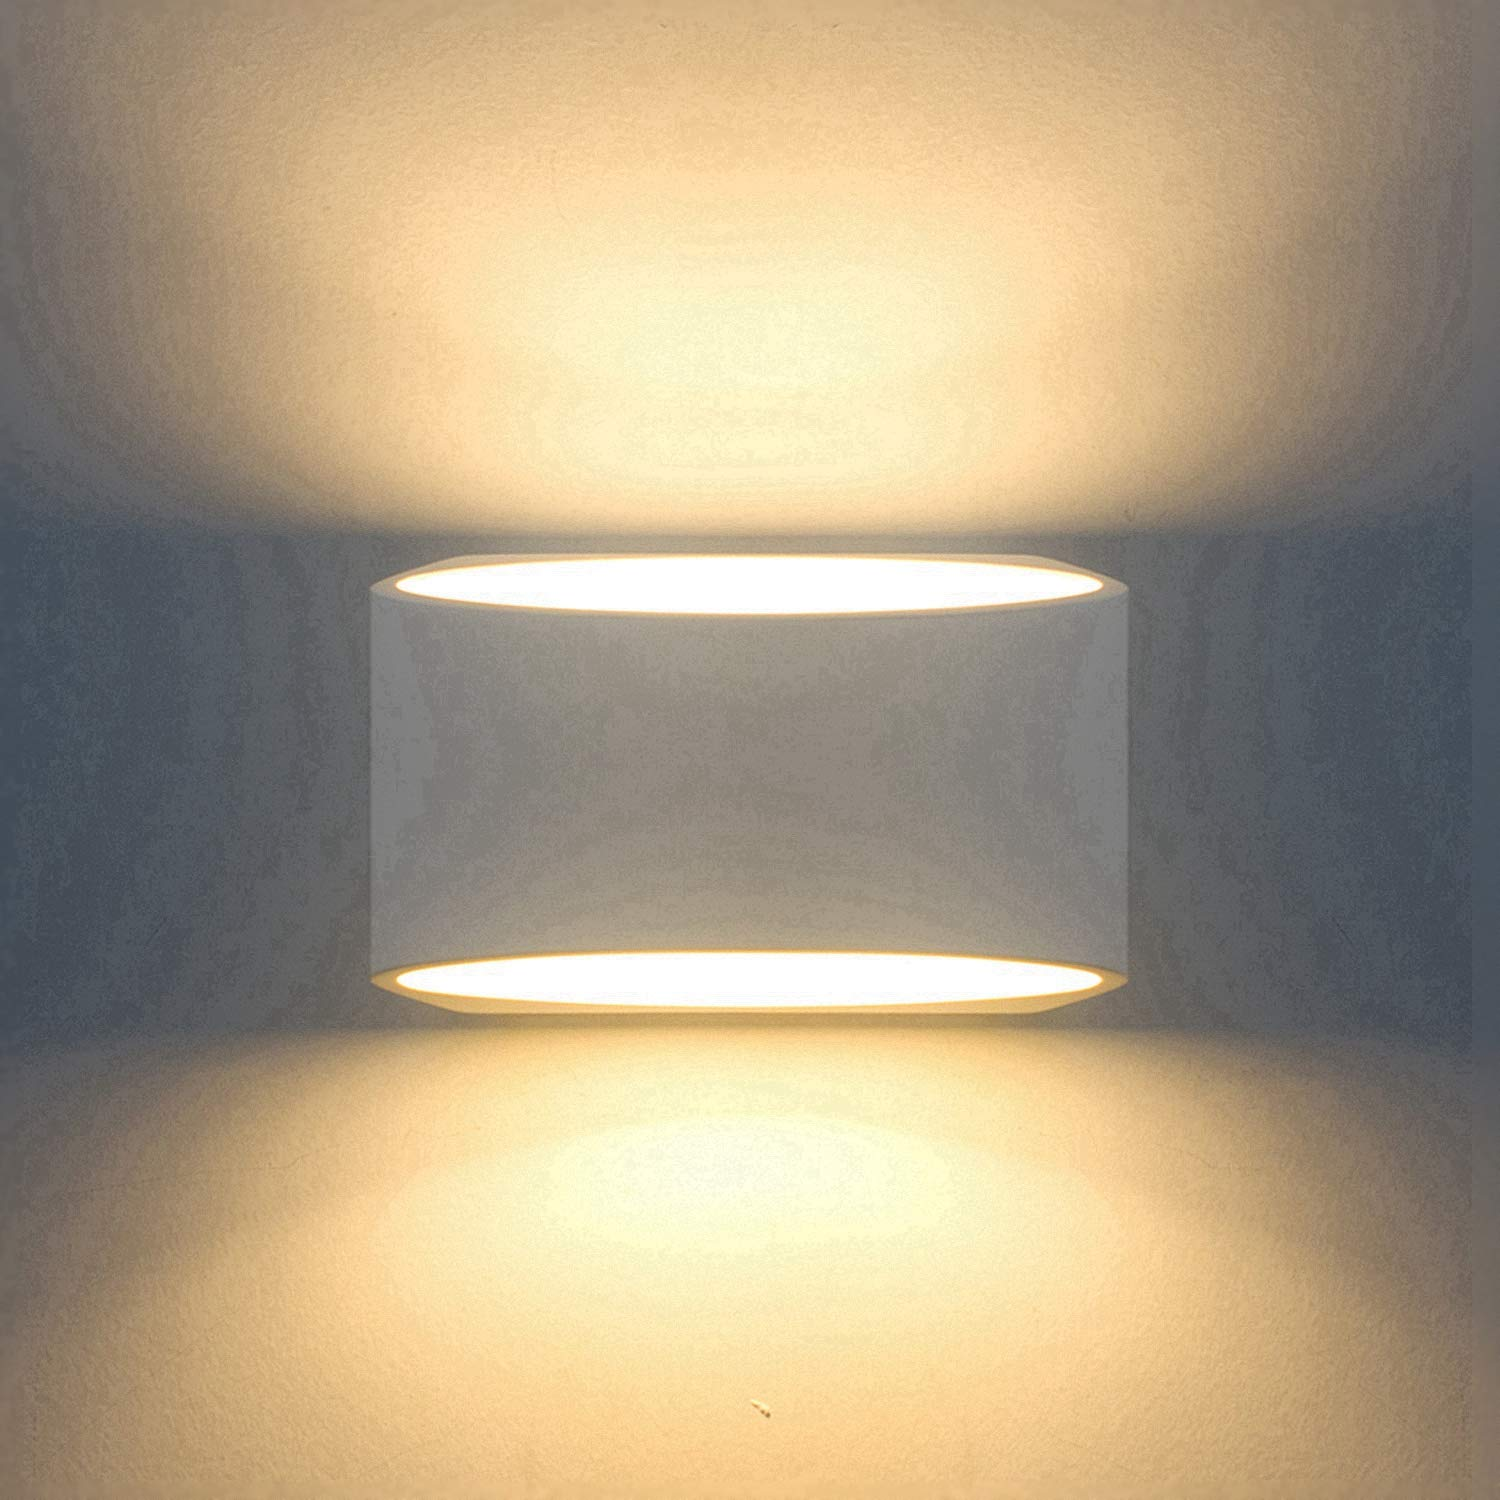 Attractive Modern Wall Sconce Lighting Fixture Lamps 7W Warm White 2700K Up And Down  Indoor Plaster Wall Lamps 100V 240V For Living Room Bedroom Hallway ...